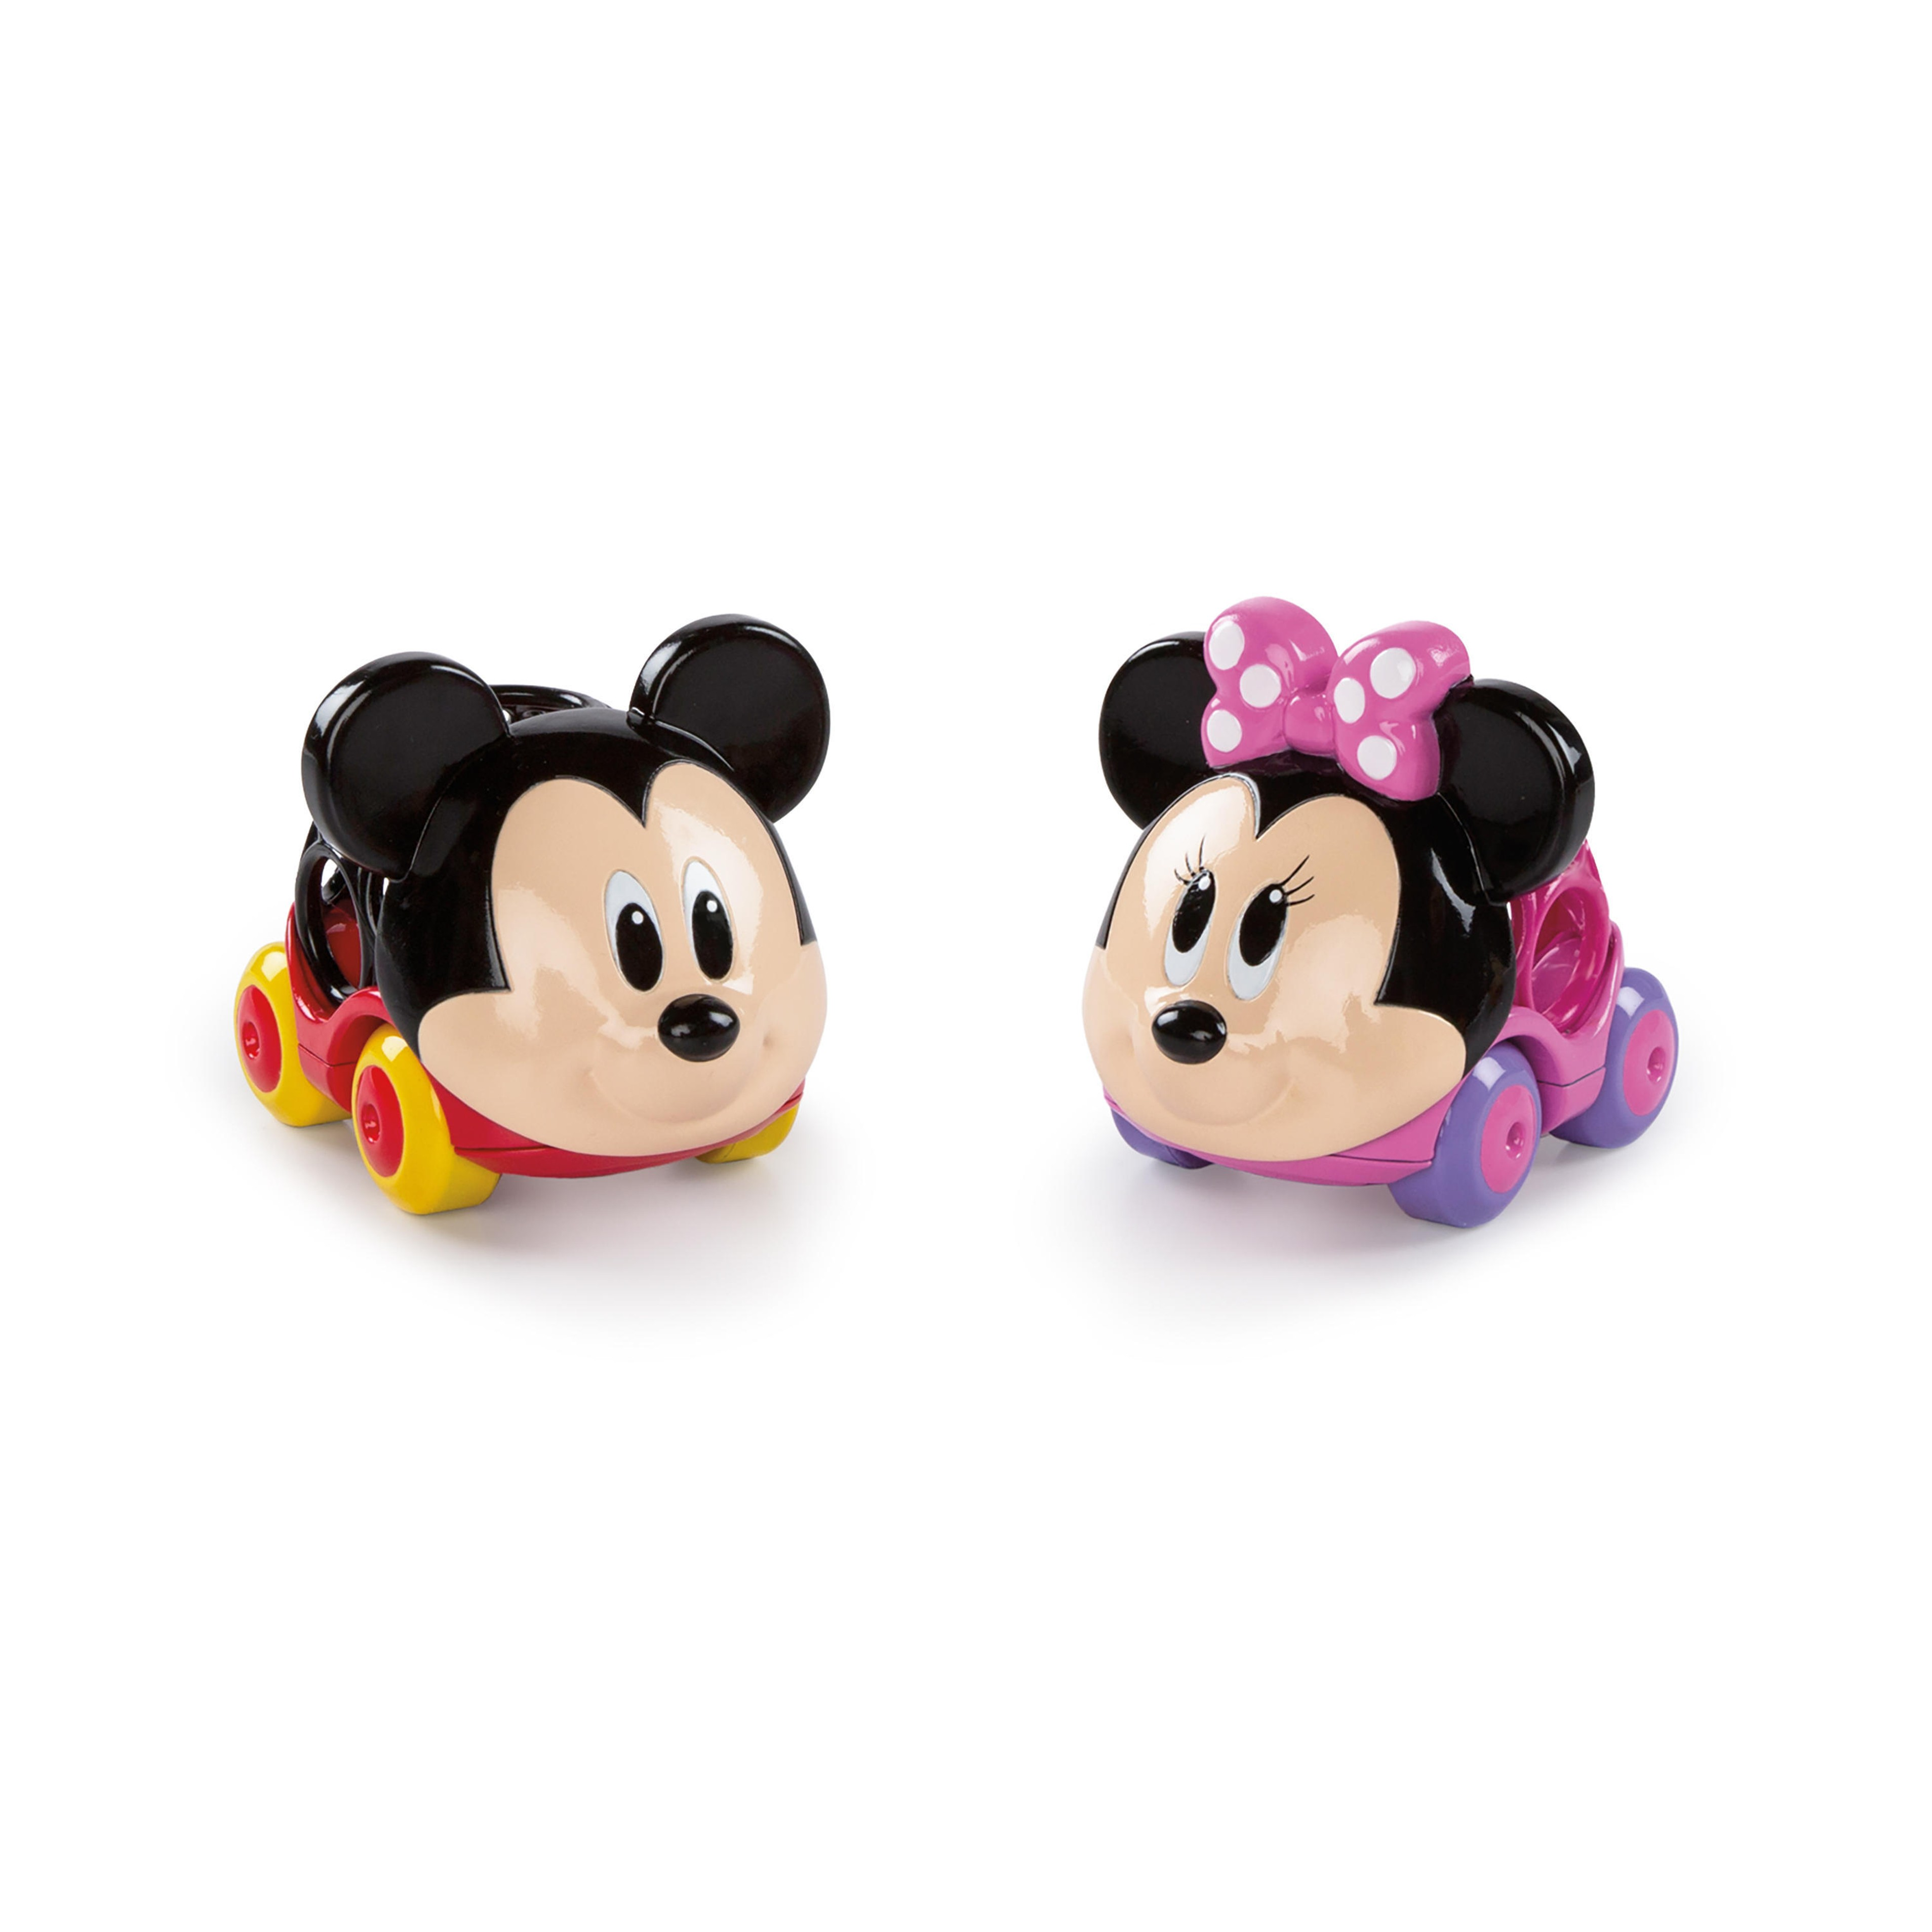 DISNEY BABY Hračka autíčka Mickey MouseFriends Go Grippers™ 2 ks 12 m